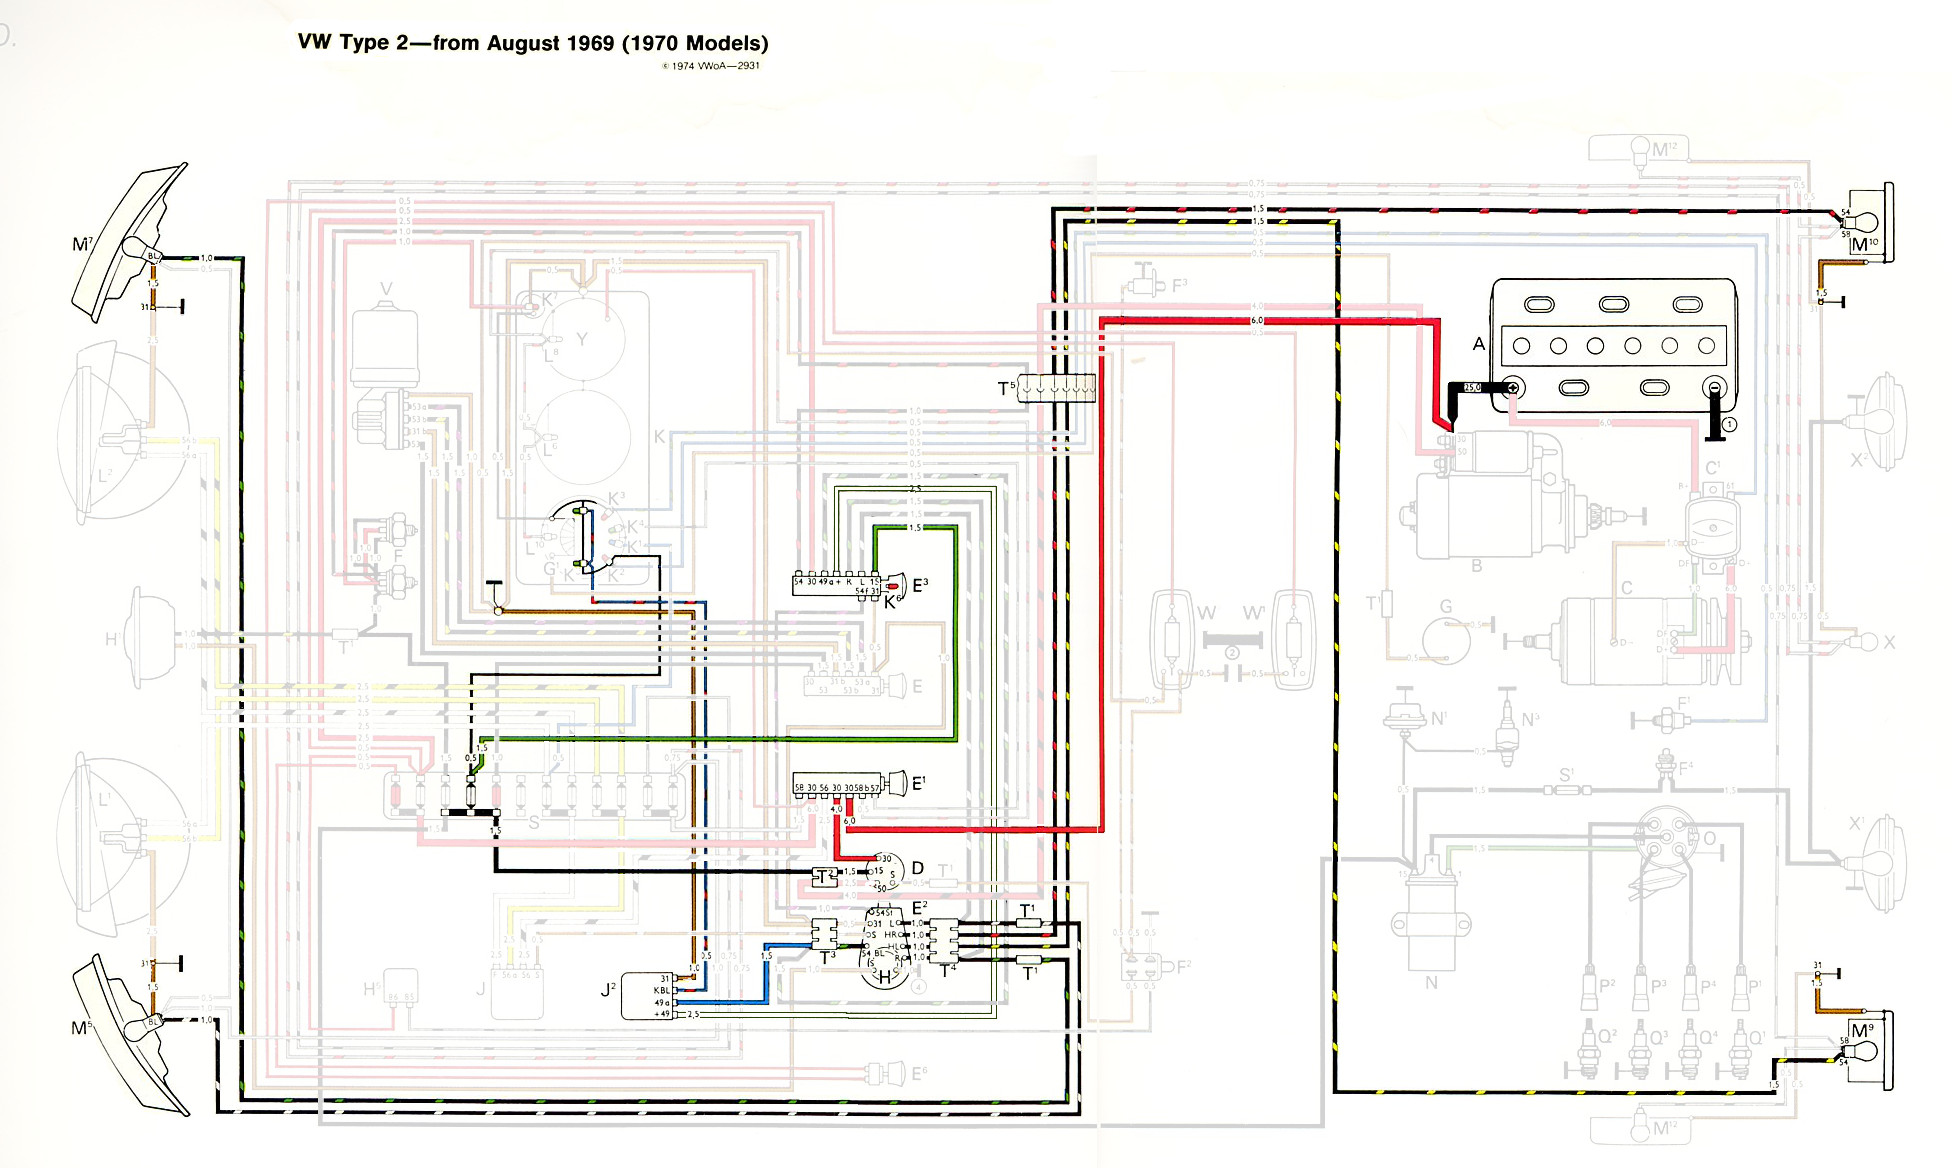 1970bus_signals thesamba com type 2 wiring diagrams vw sand rail wiring diagram at soozxer.org